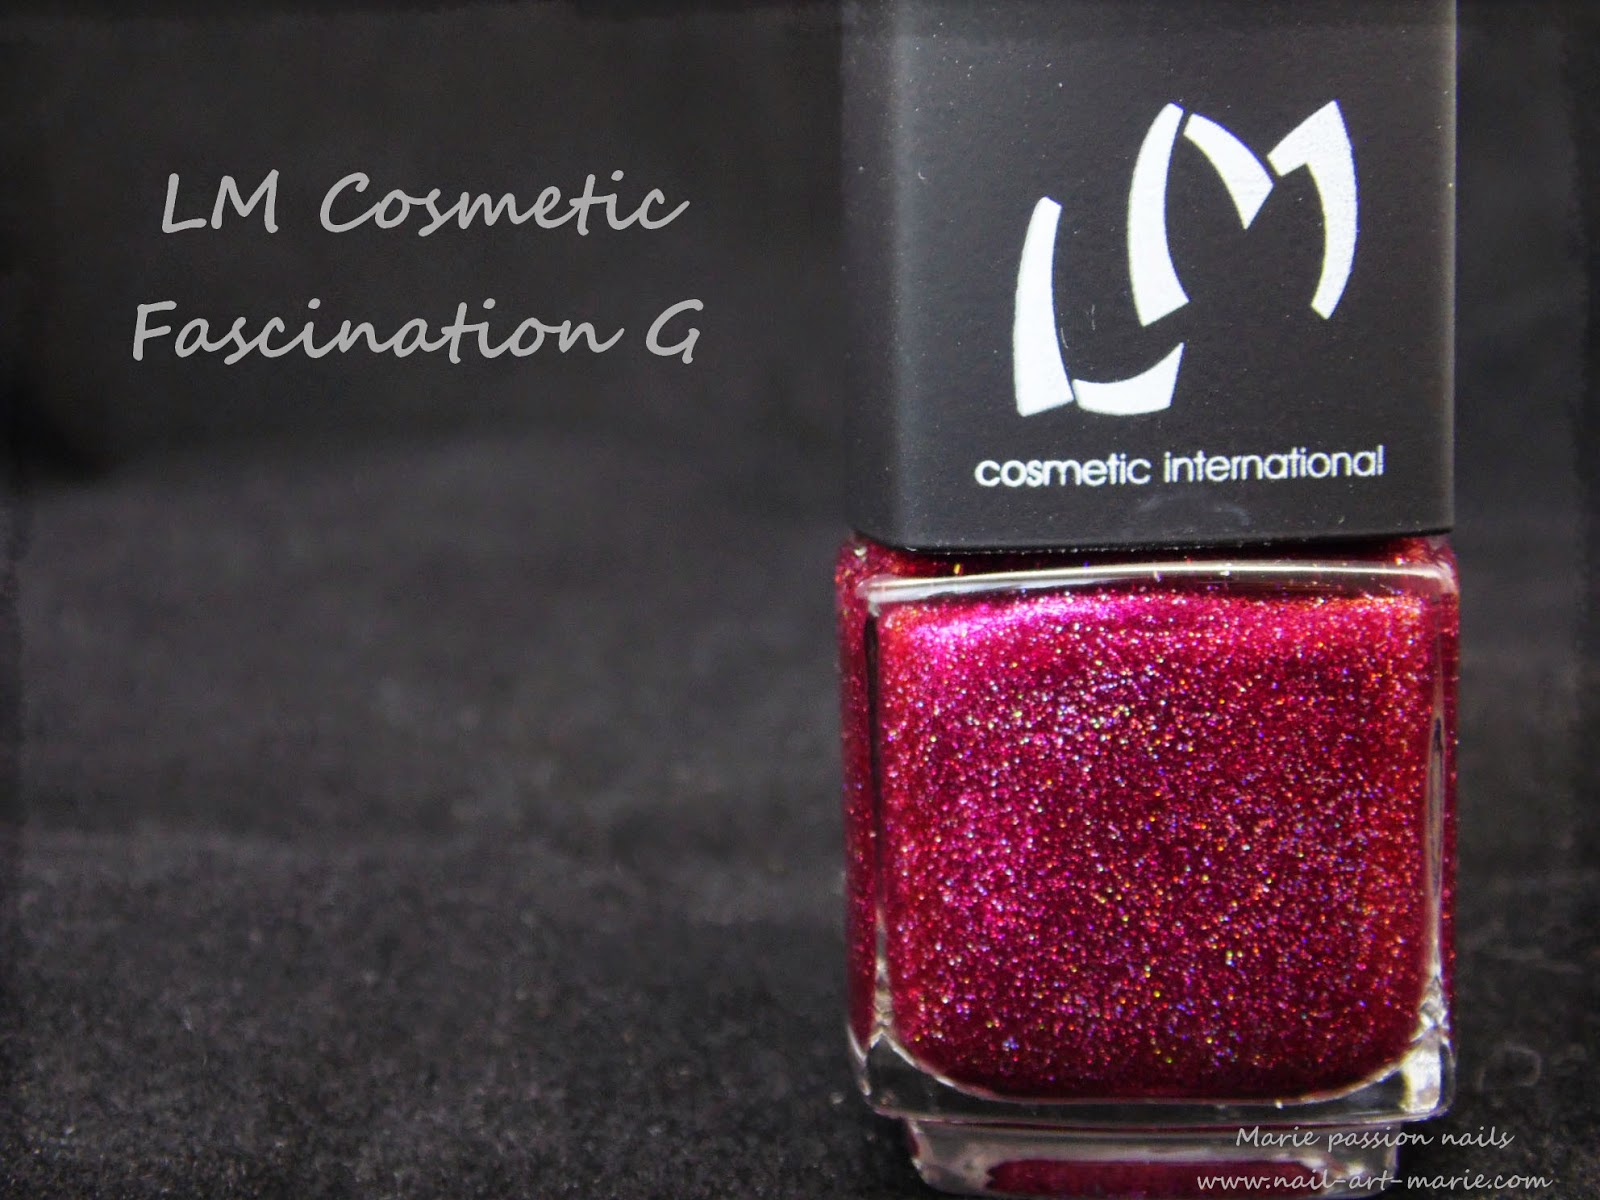 LM Cosmetic Fascination (G)1